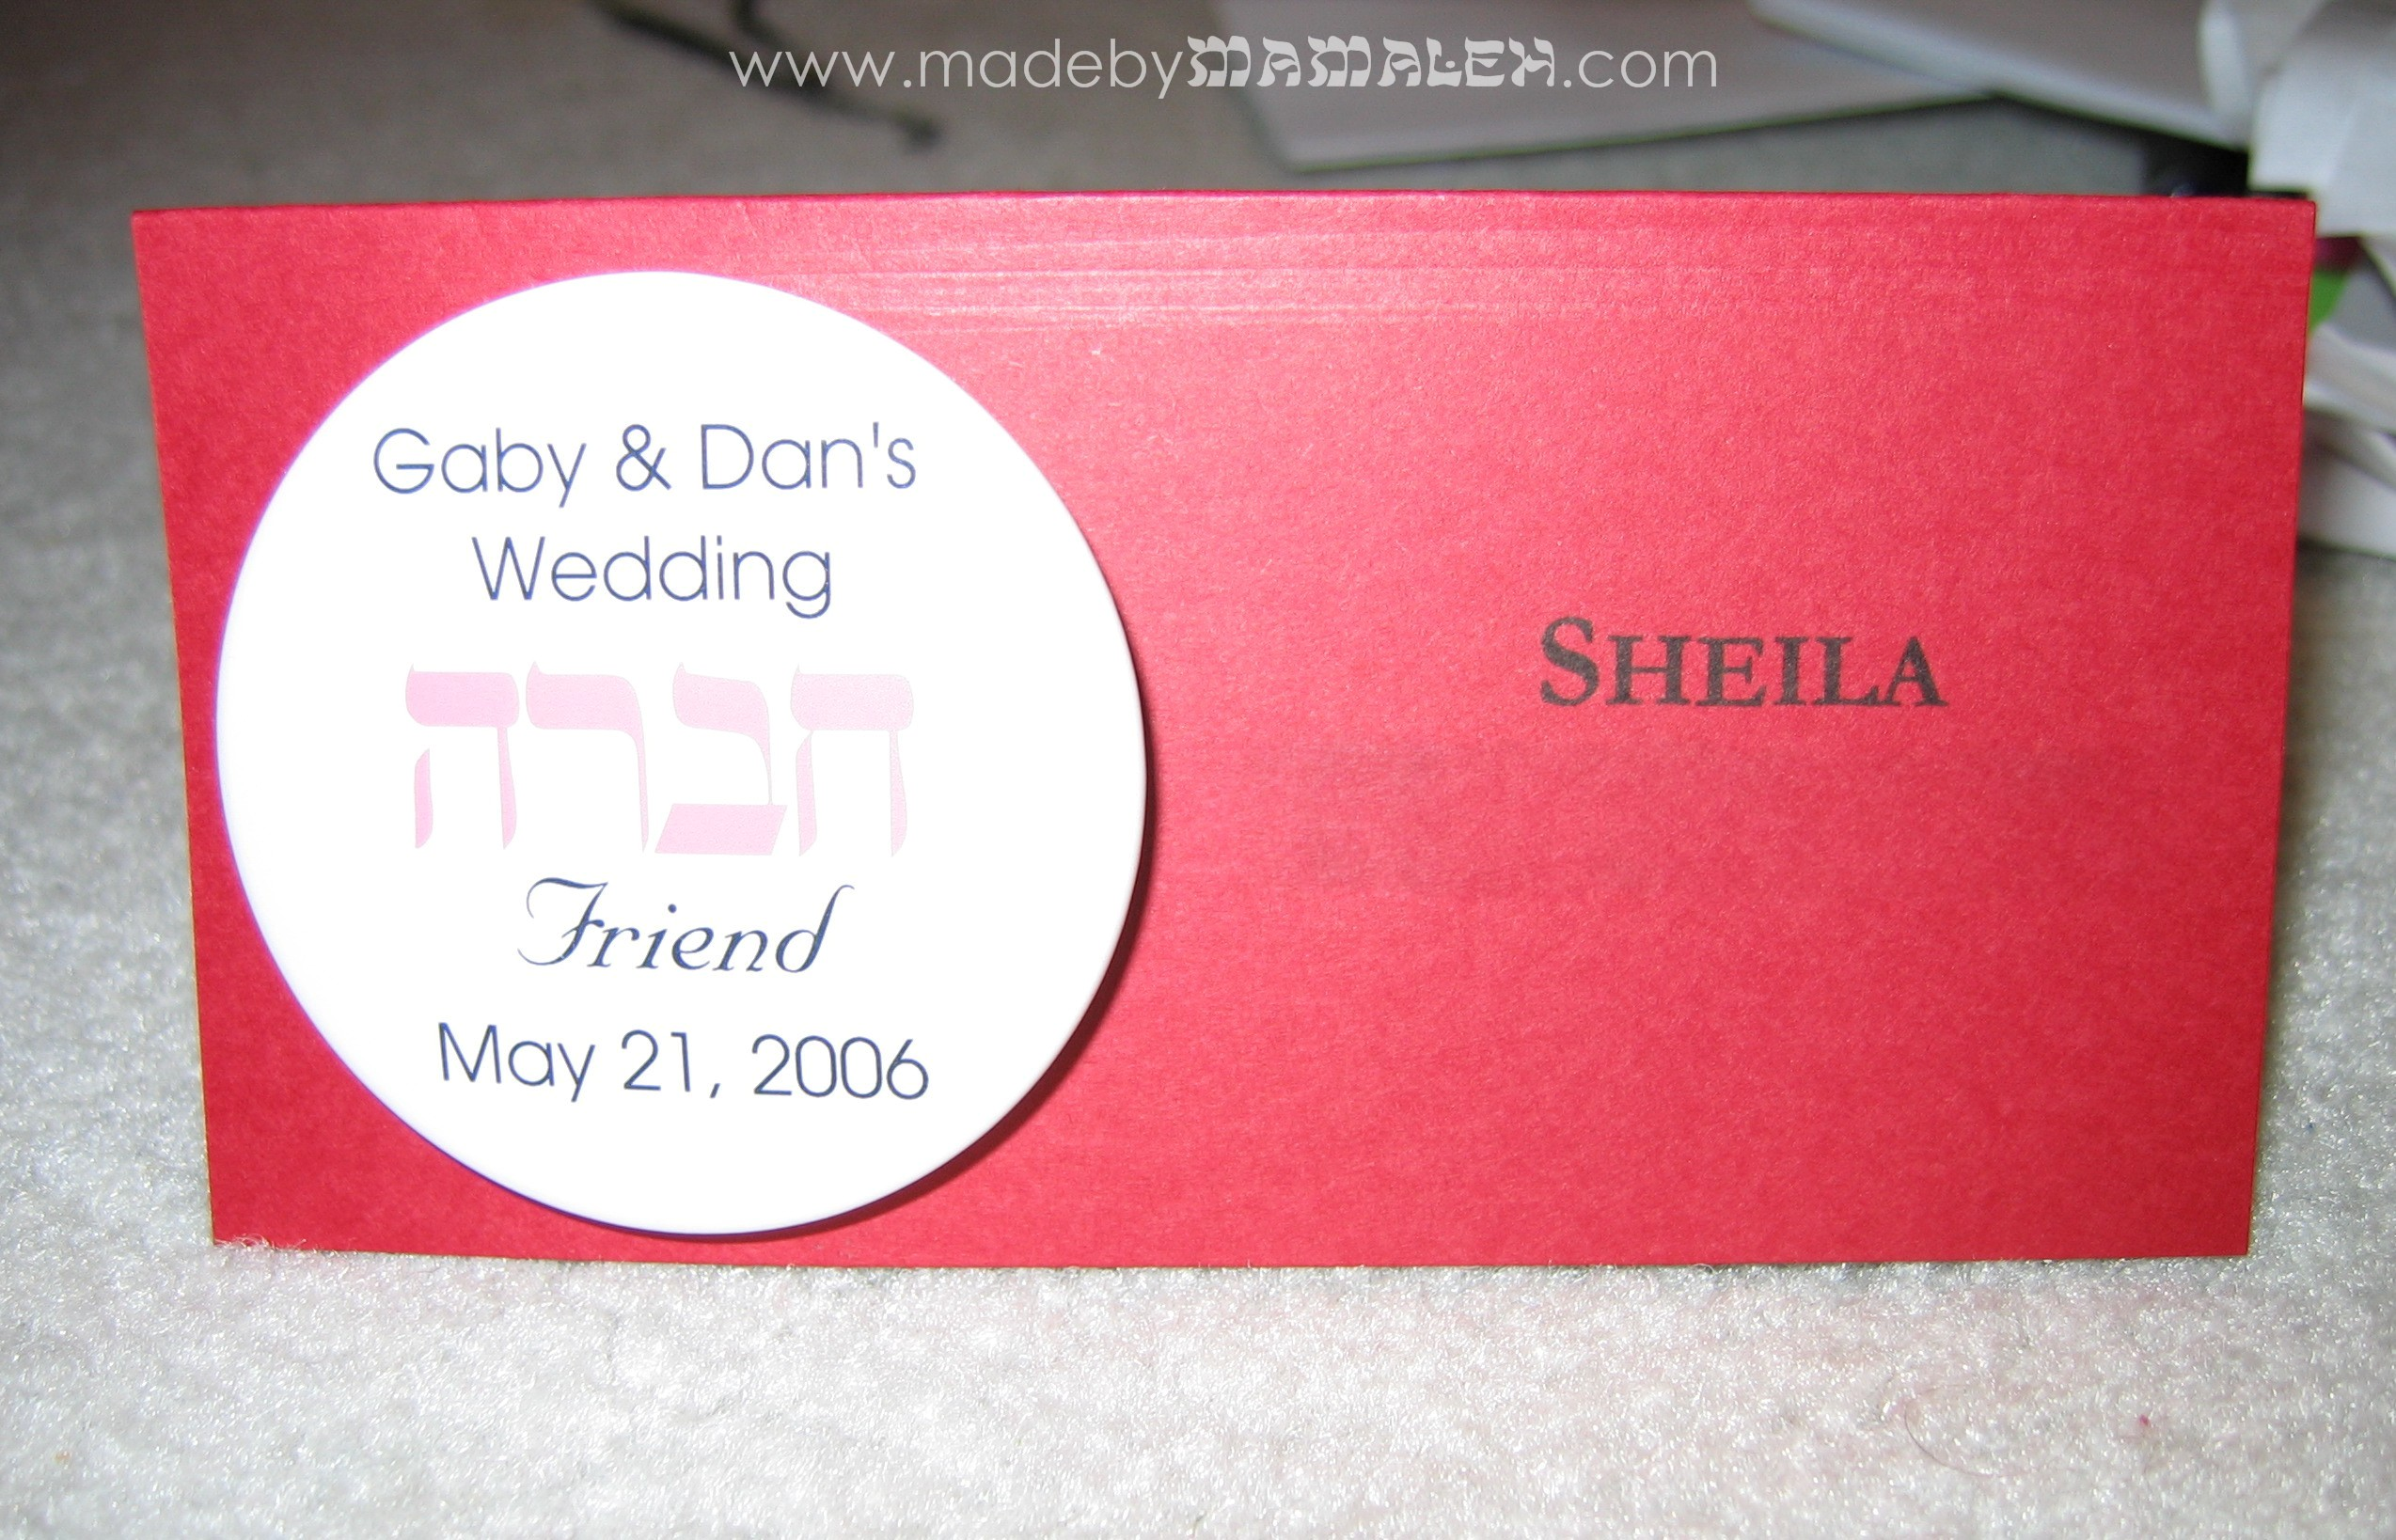 Jewish wedding | madebymamaleh